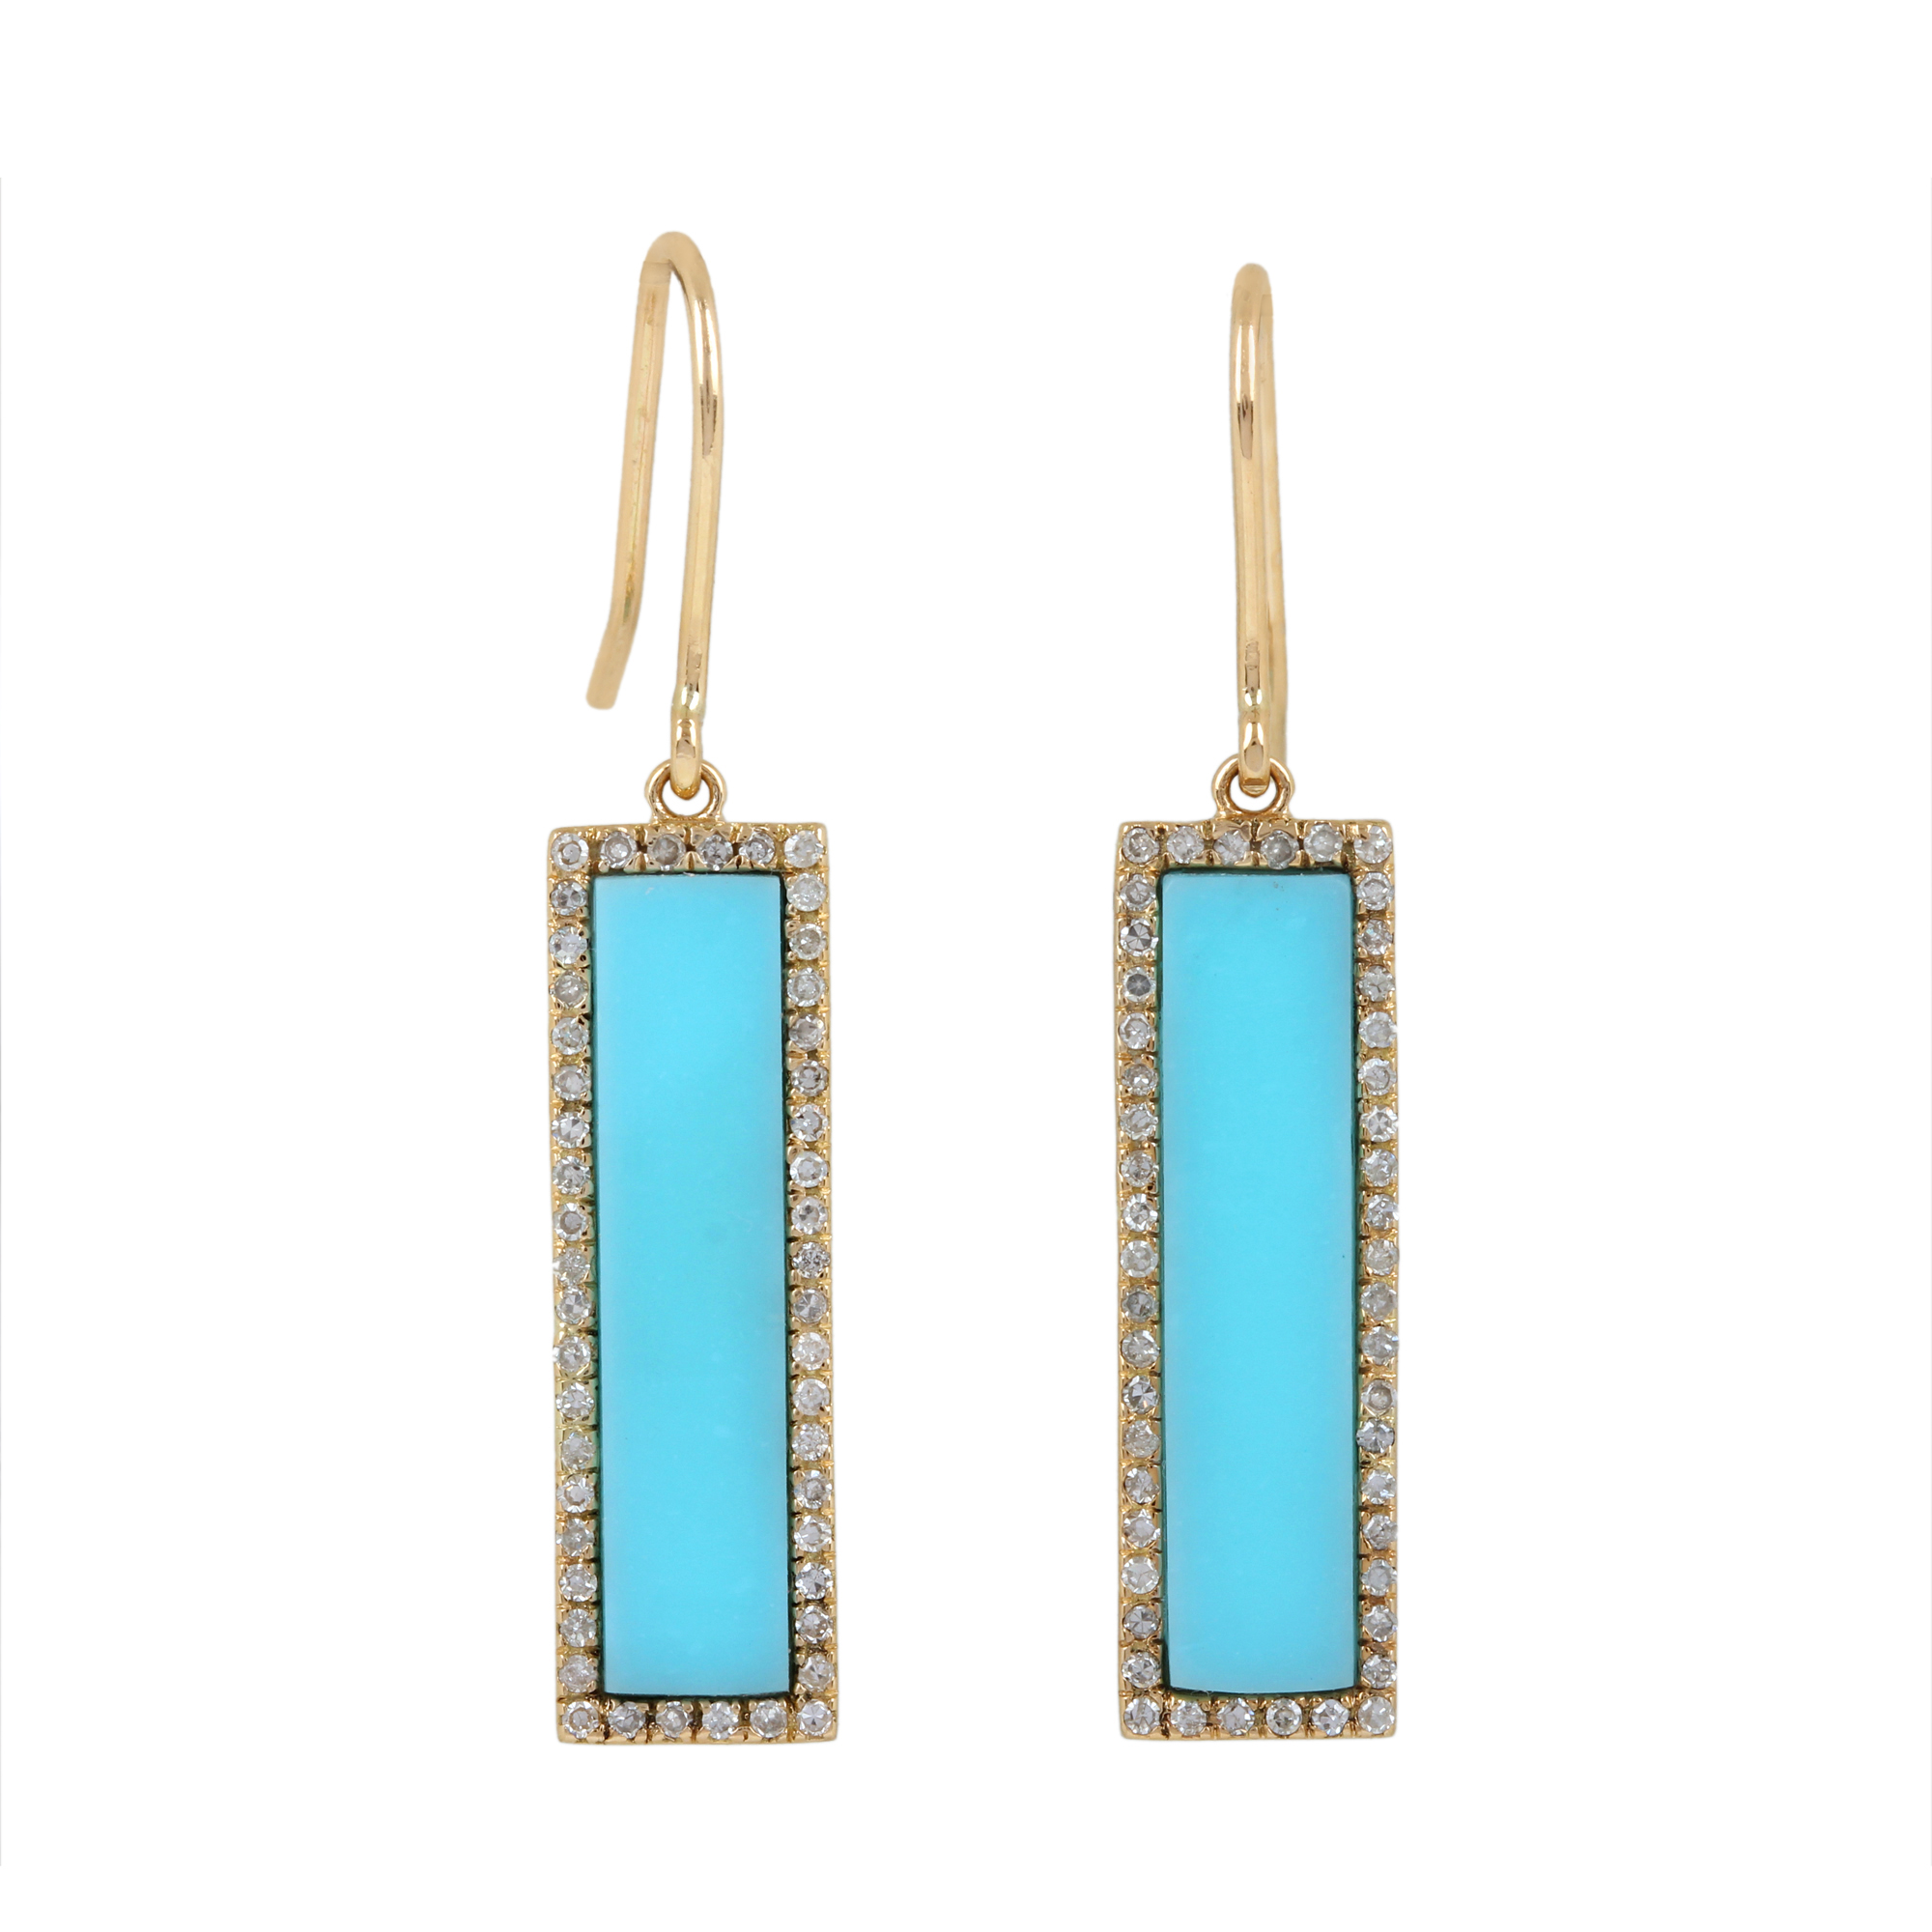 14K Solid Yellow Gold Turquoise Dangle Earrings Pave Diamond Jewelry